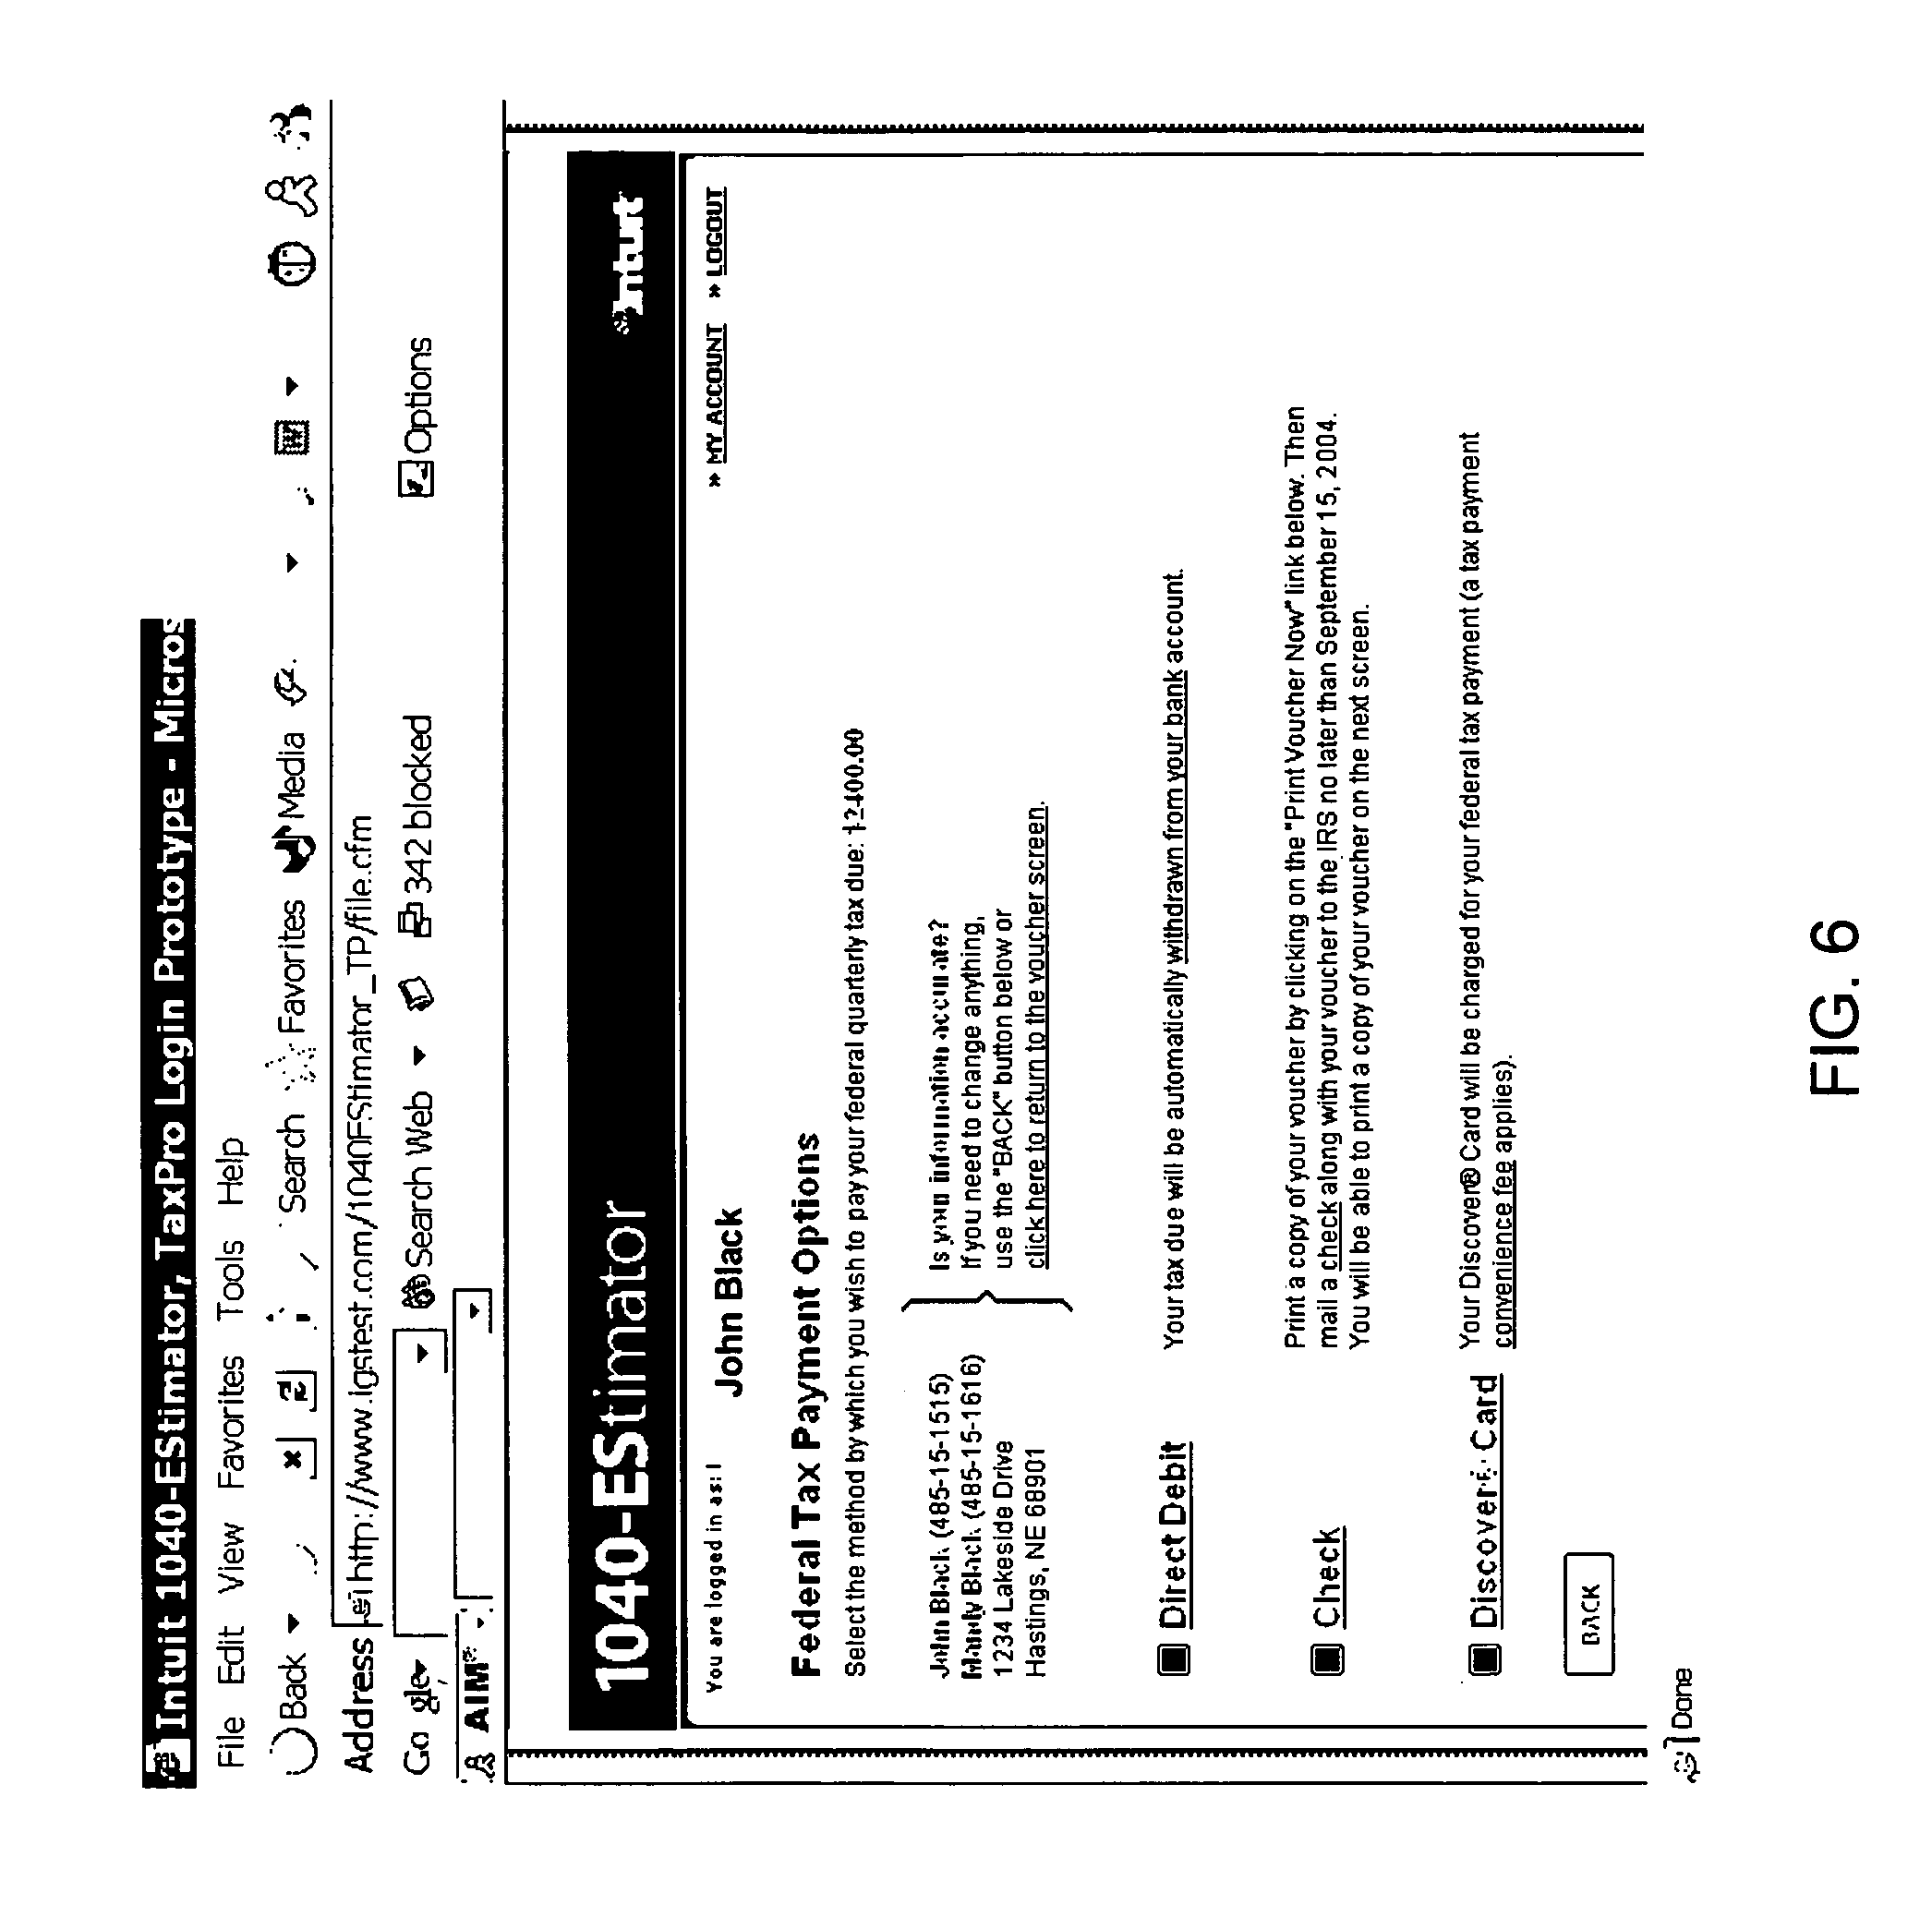 worksheet Eftps Worksheet Short Form eftps payment worksheet abitlikethis worksheet